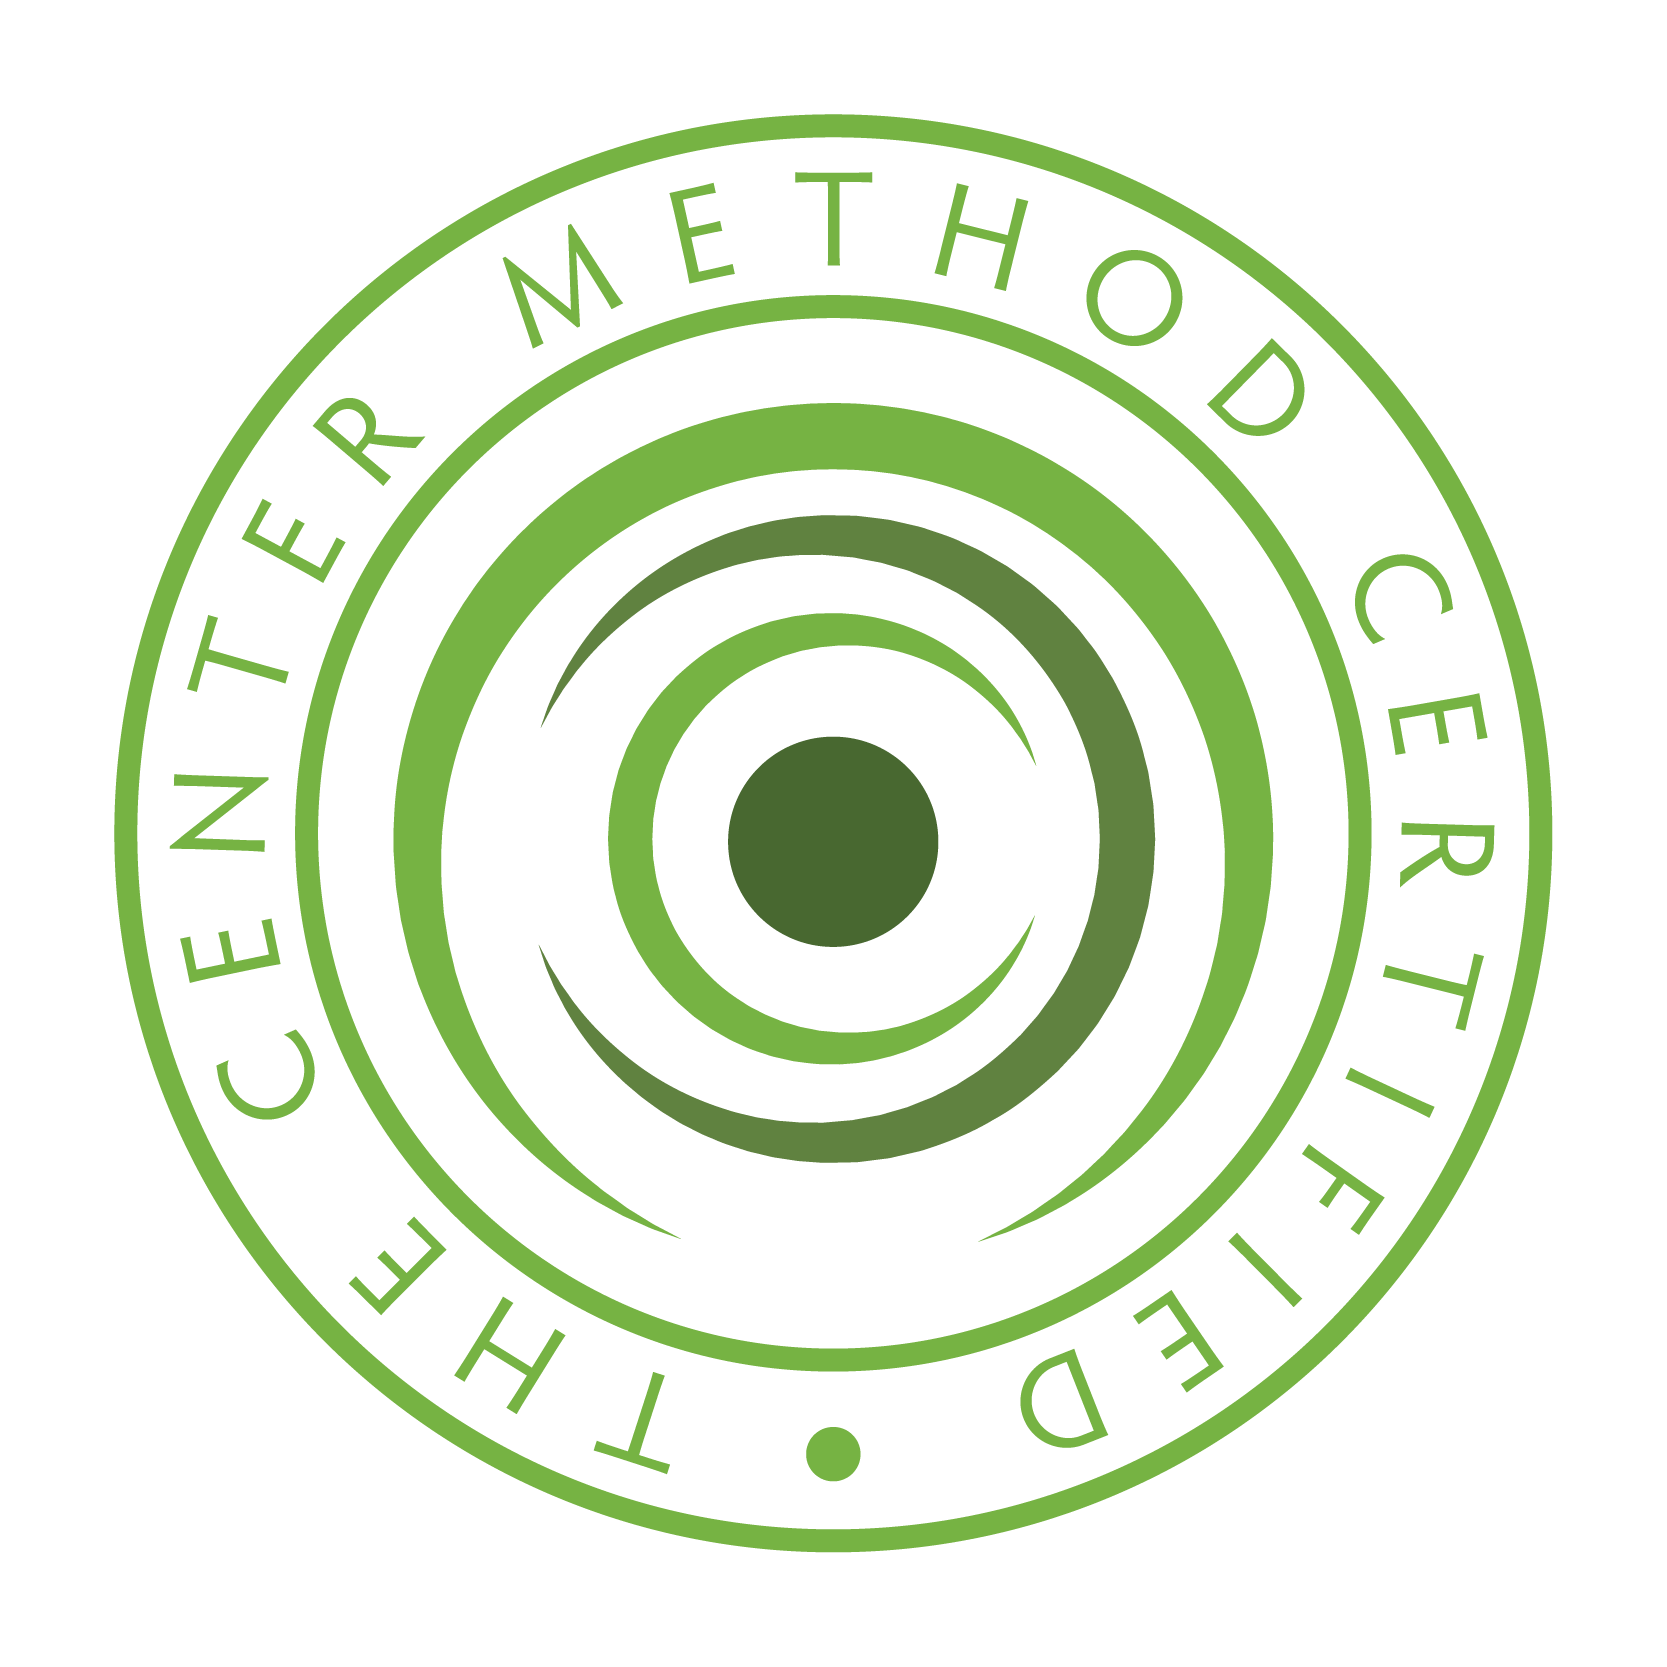 SEAL - The Center Method-01.png